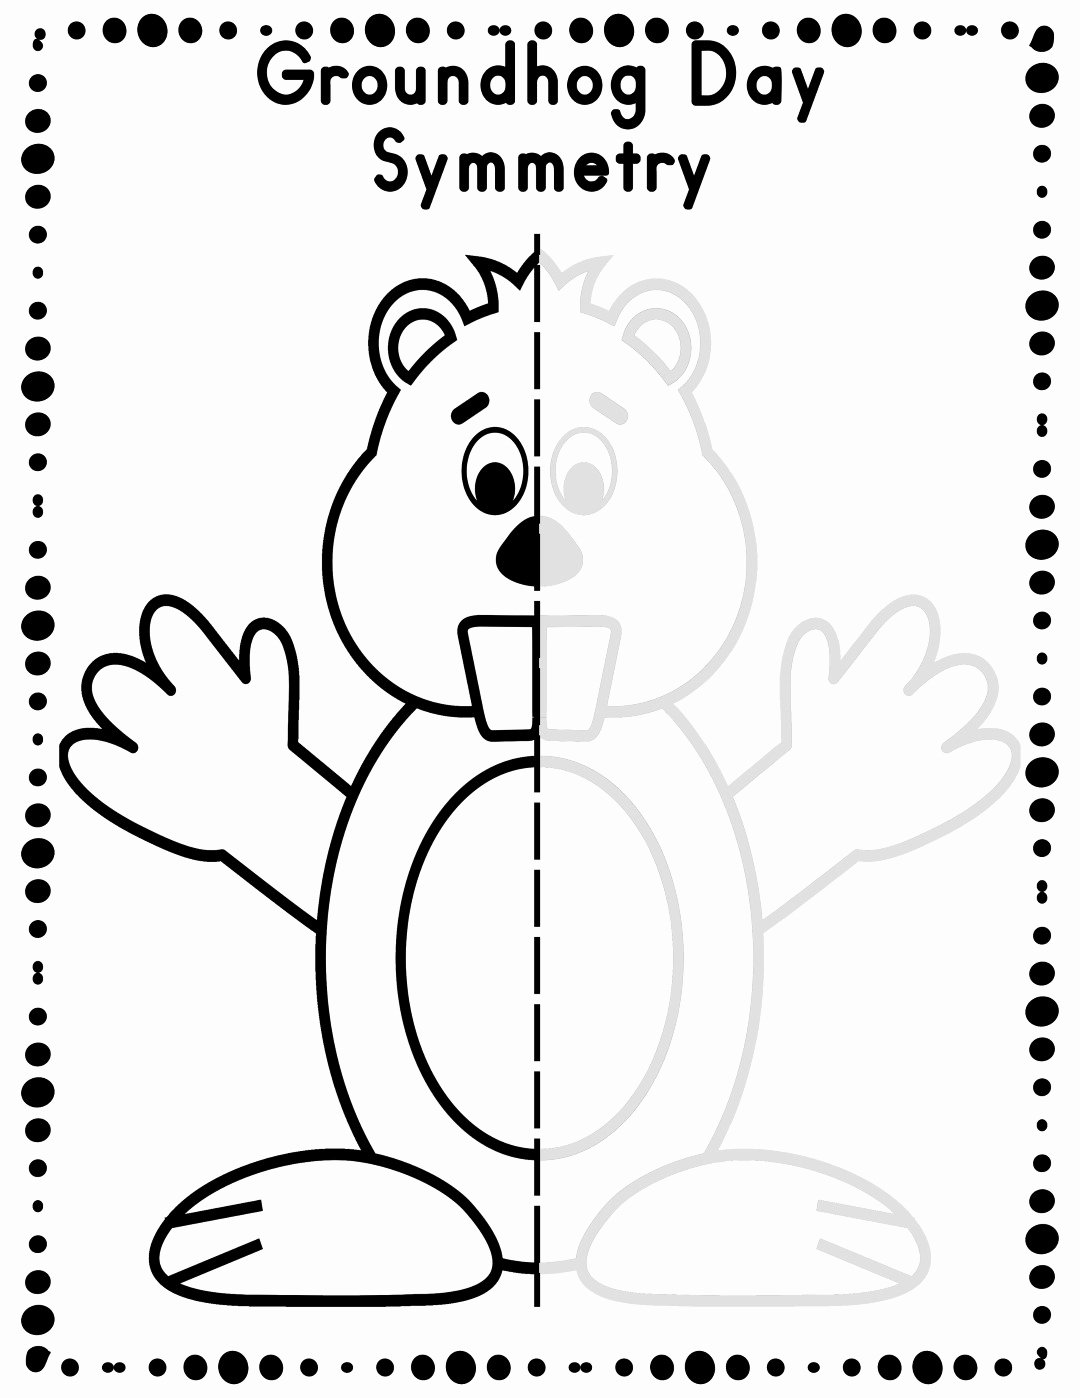 Groundhog Day Worksheets for Preschoolers New Groundhog Day Worksheets Best Coloring Pages for Kids